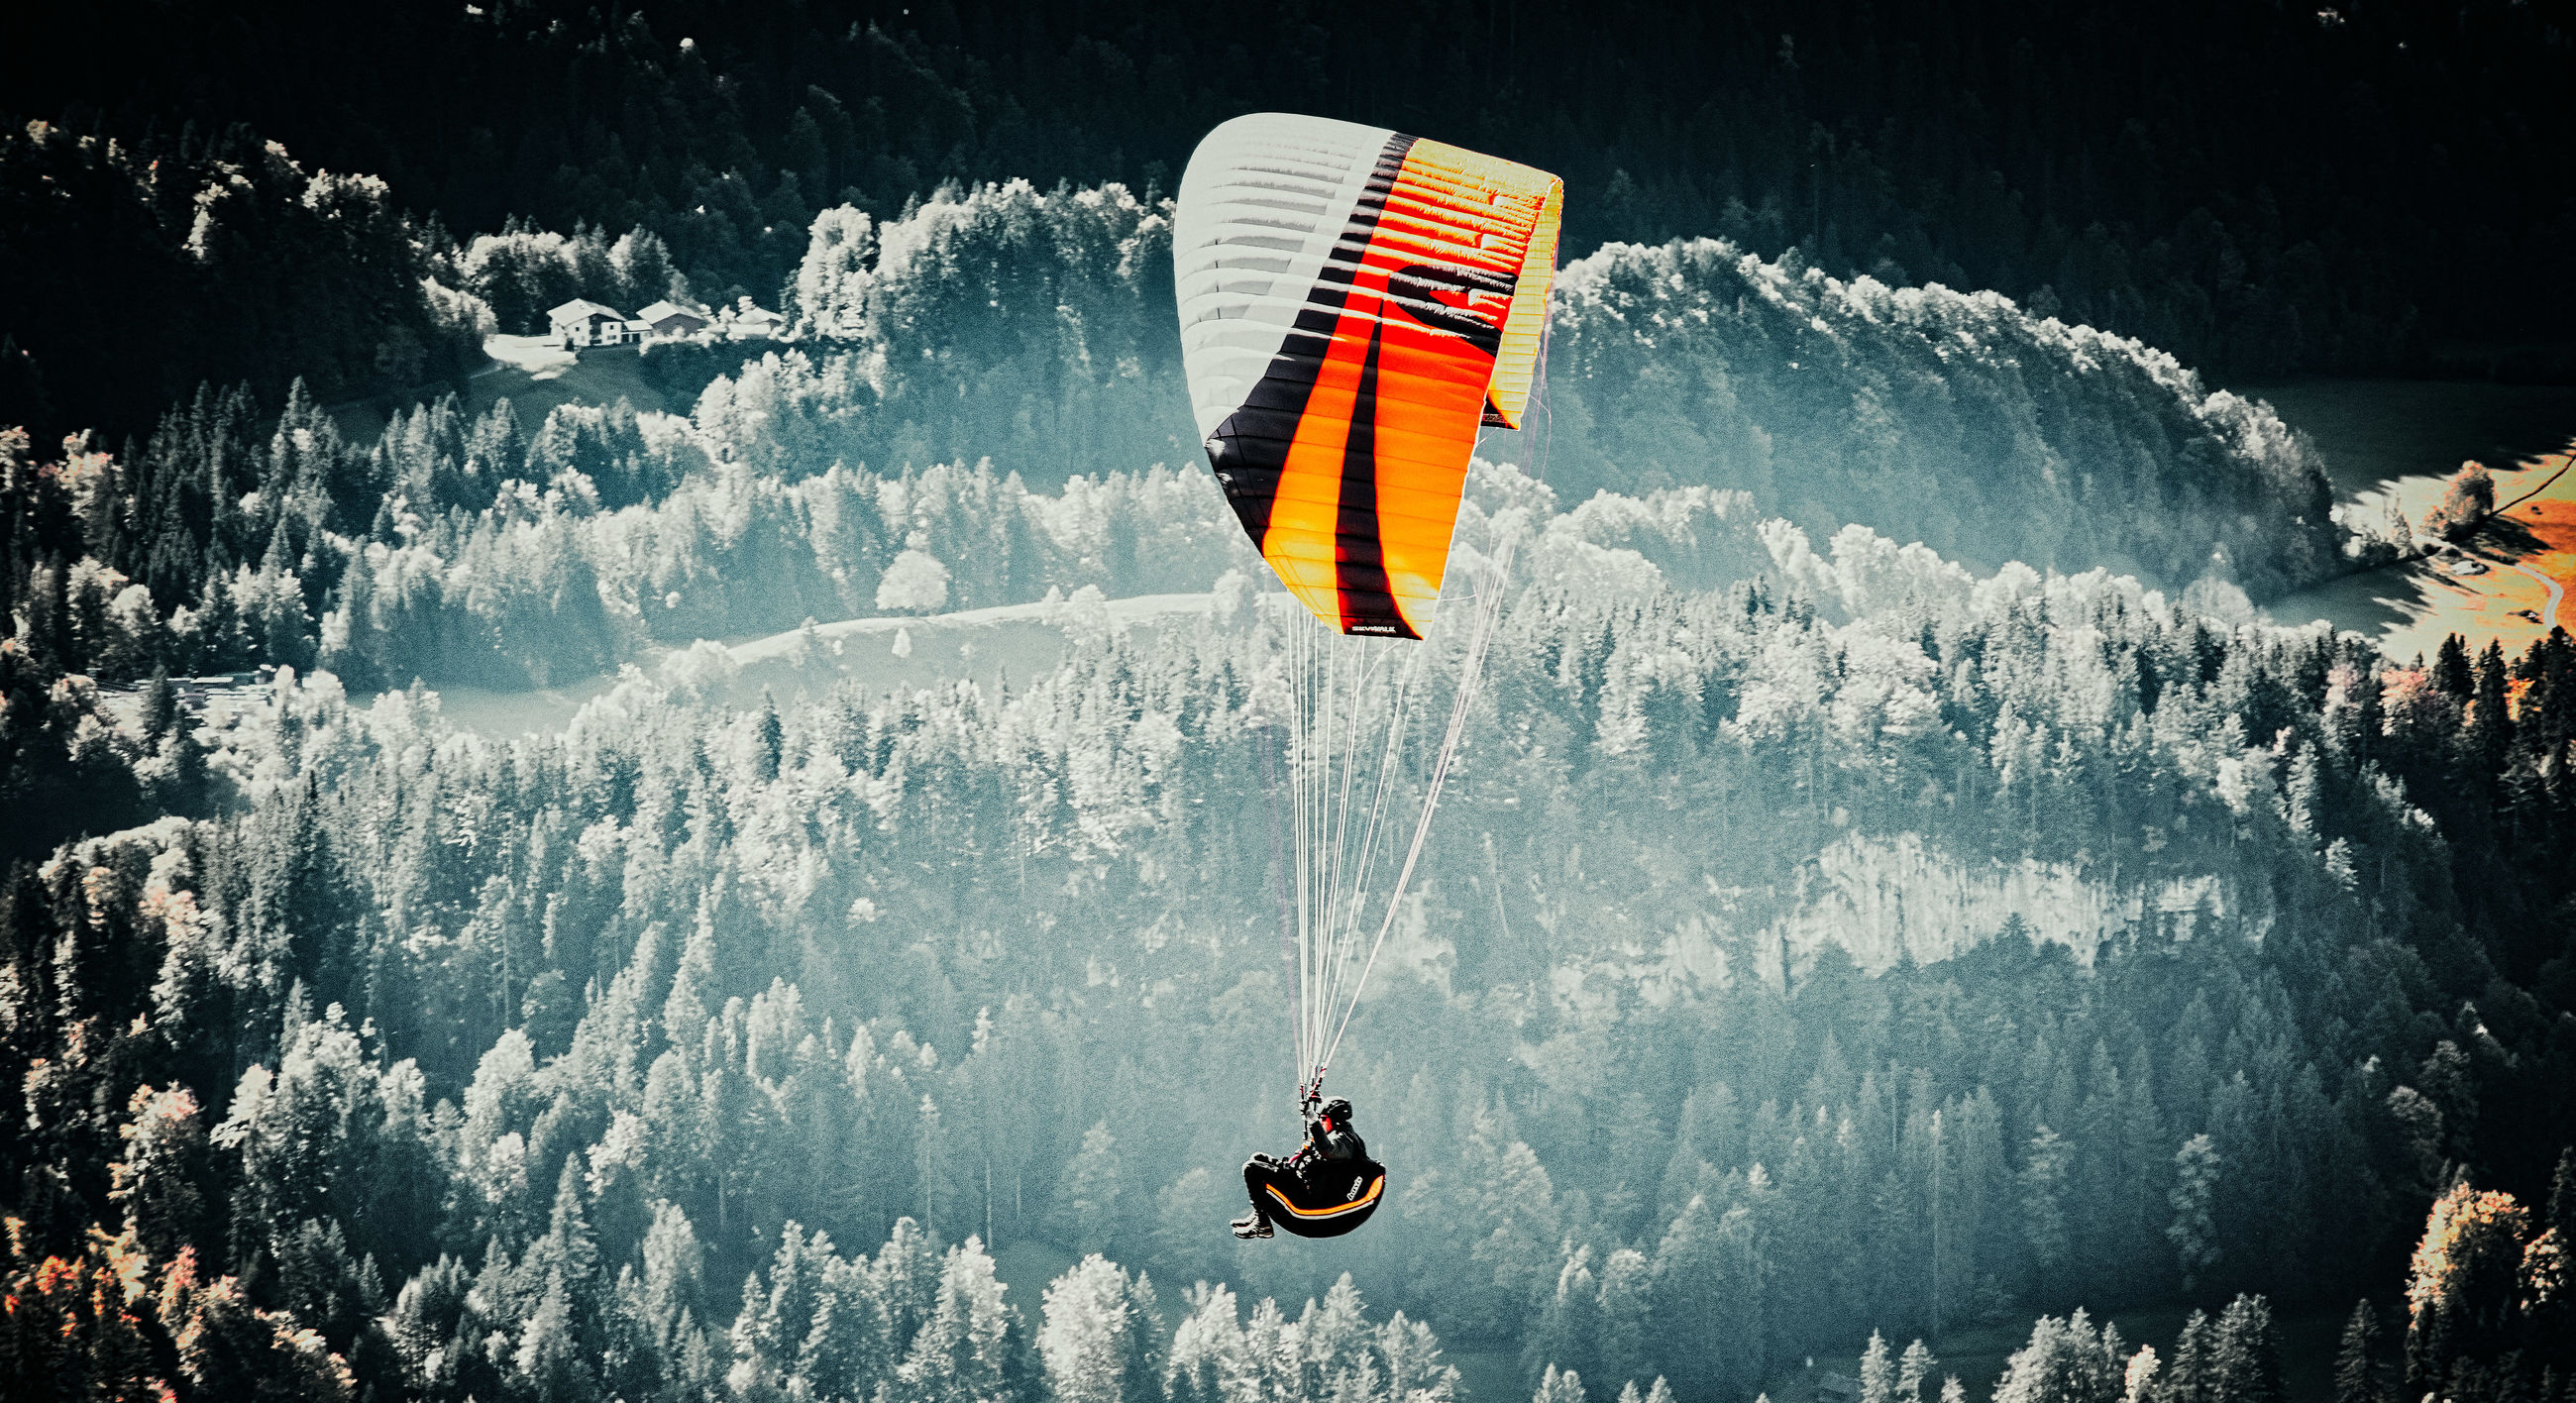 sport, adventure, leisure activity, extreme sports, flying, paragliding, one person, mid-air, nature, real people, lifestyles, day, joy, parachute, water, unrecognizable person, beauty in nature, transportation, freedom, outdoors, skydiving